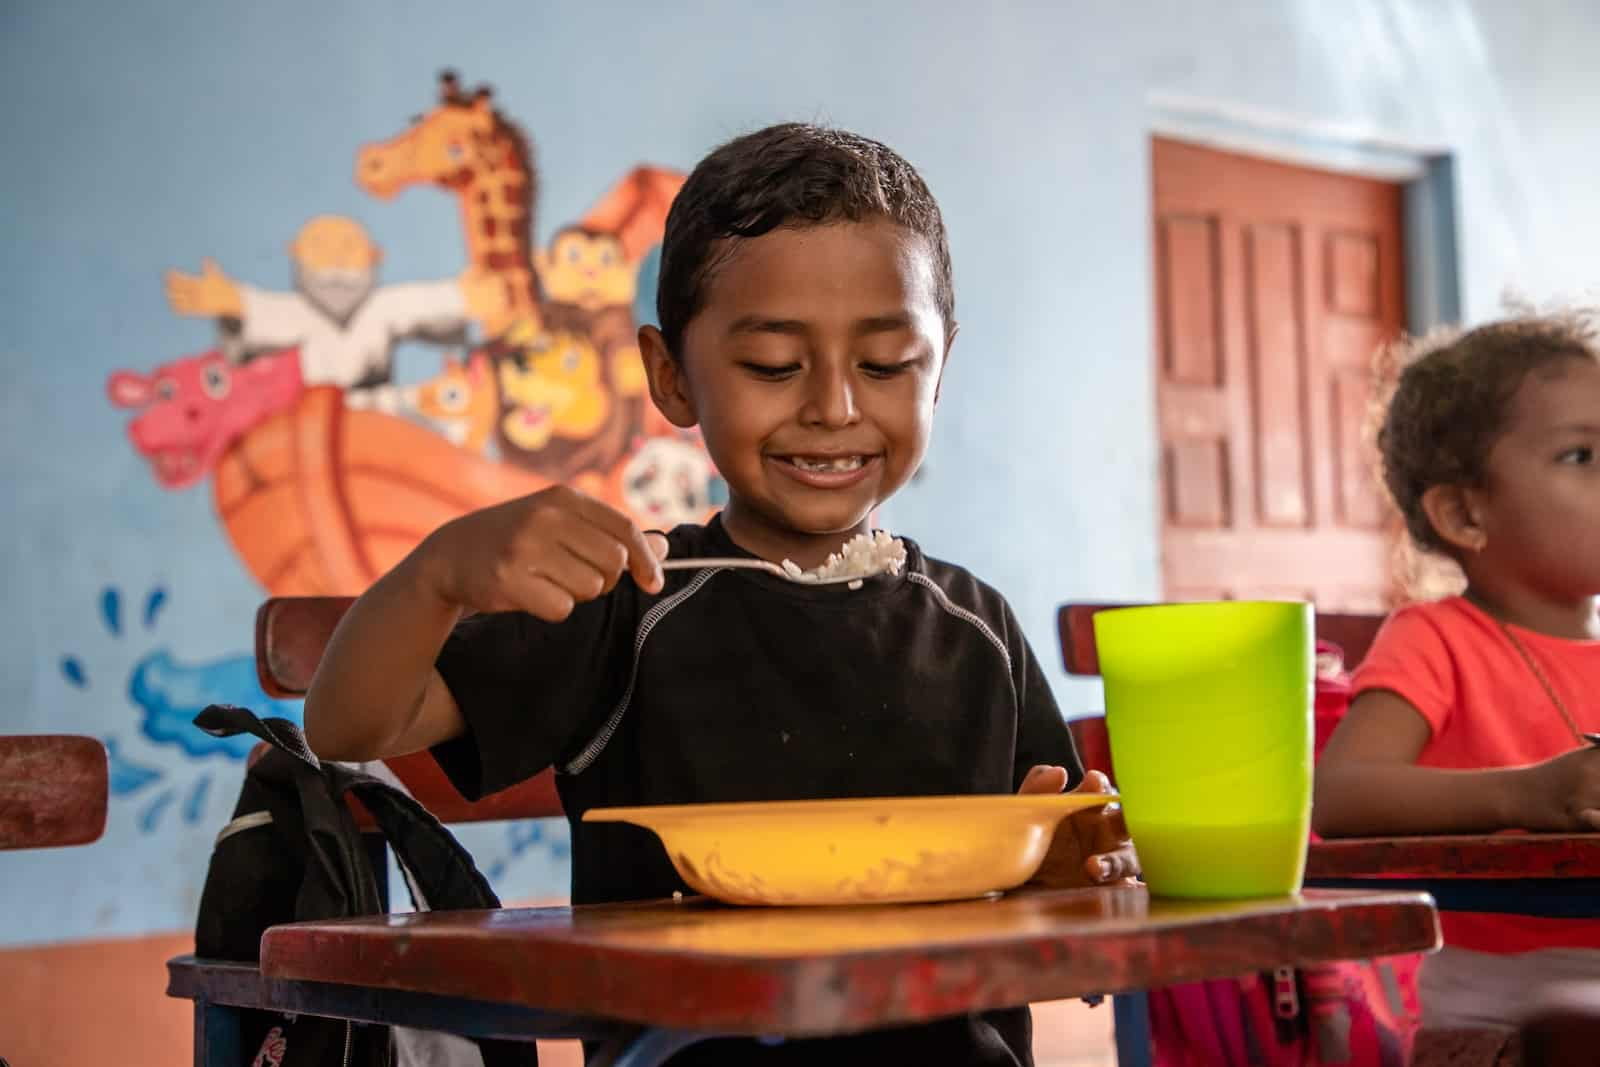 A boy sits at a desk, eating a bowl of food.